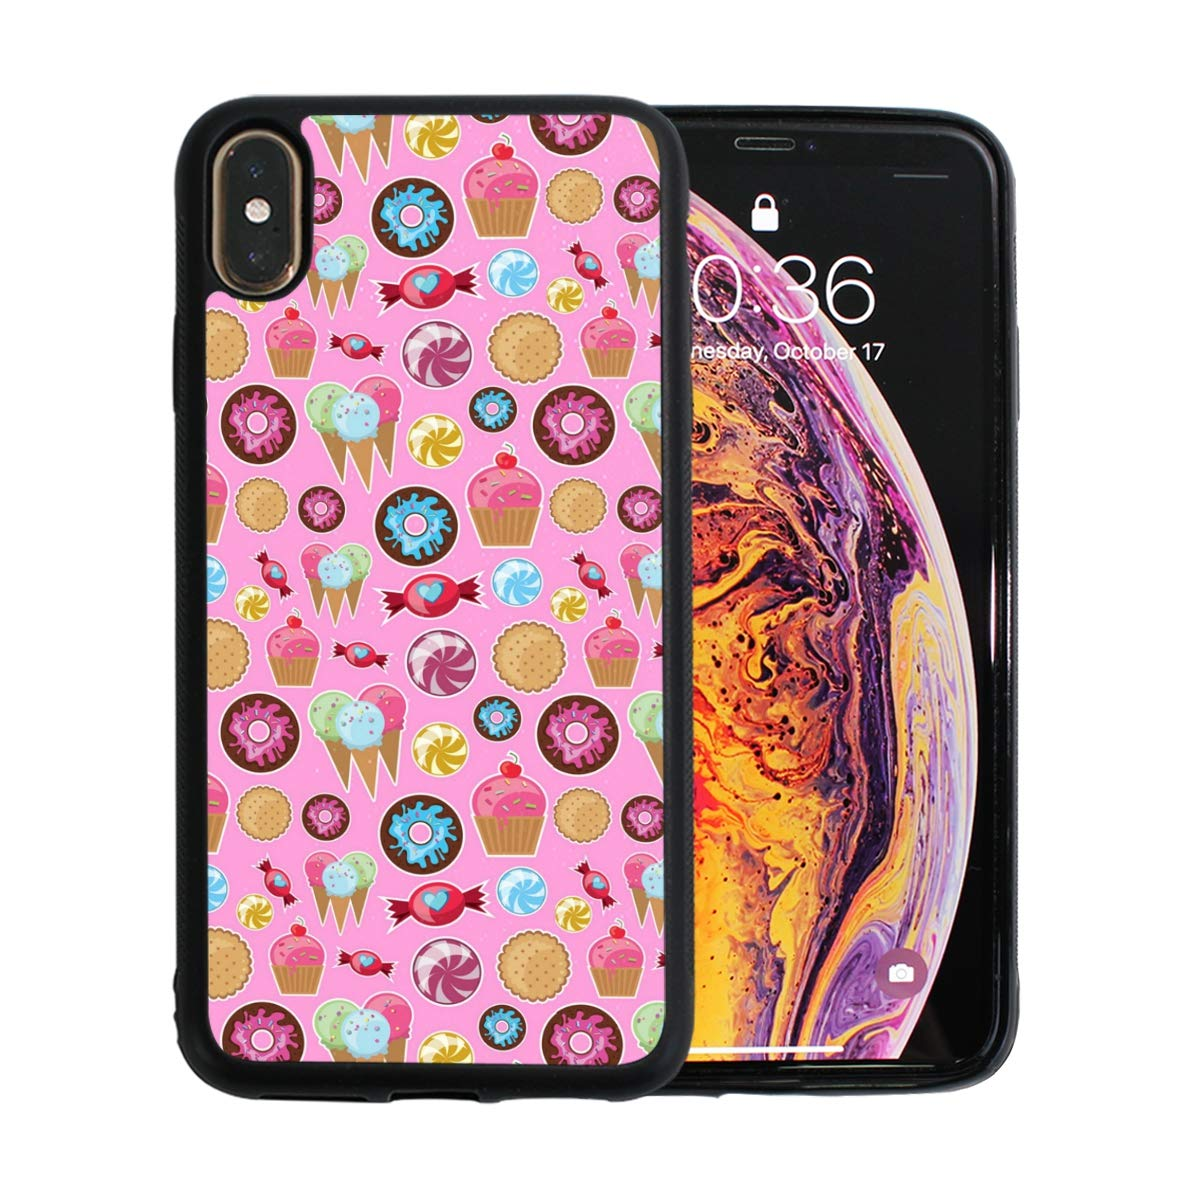 Pink Cake Decorating Kit Designed for Apple iPhone Xs MAX Case Scratch-Resistant Ultra-Thin Case